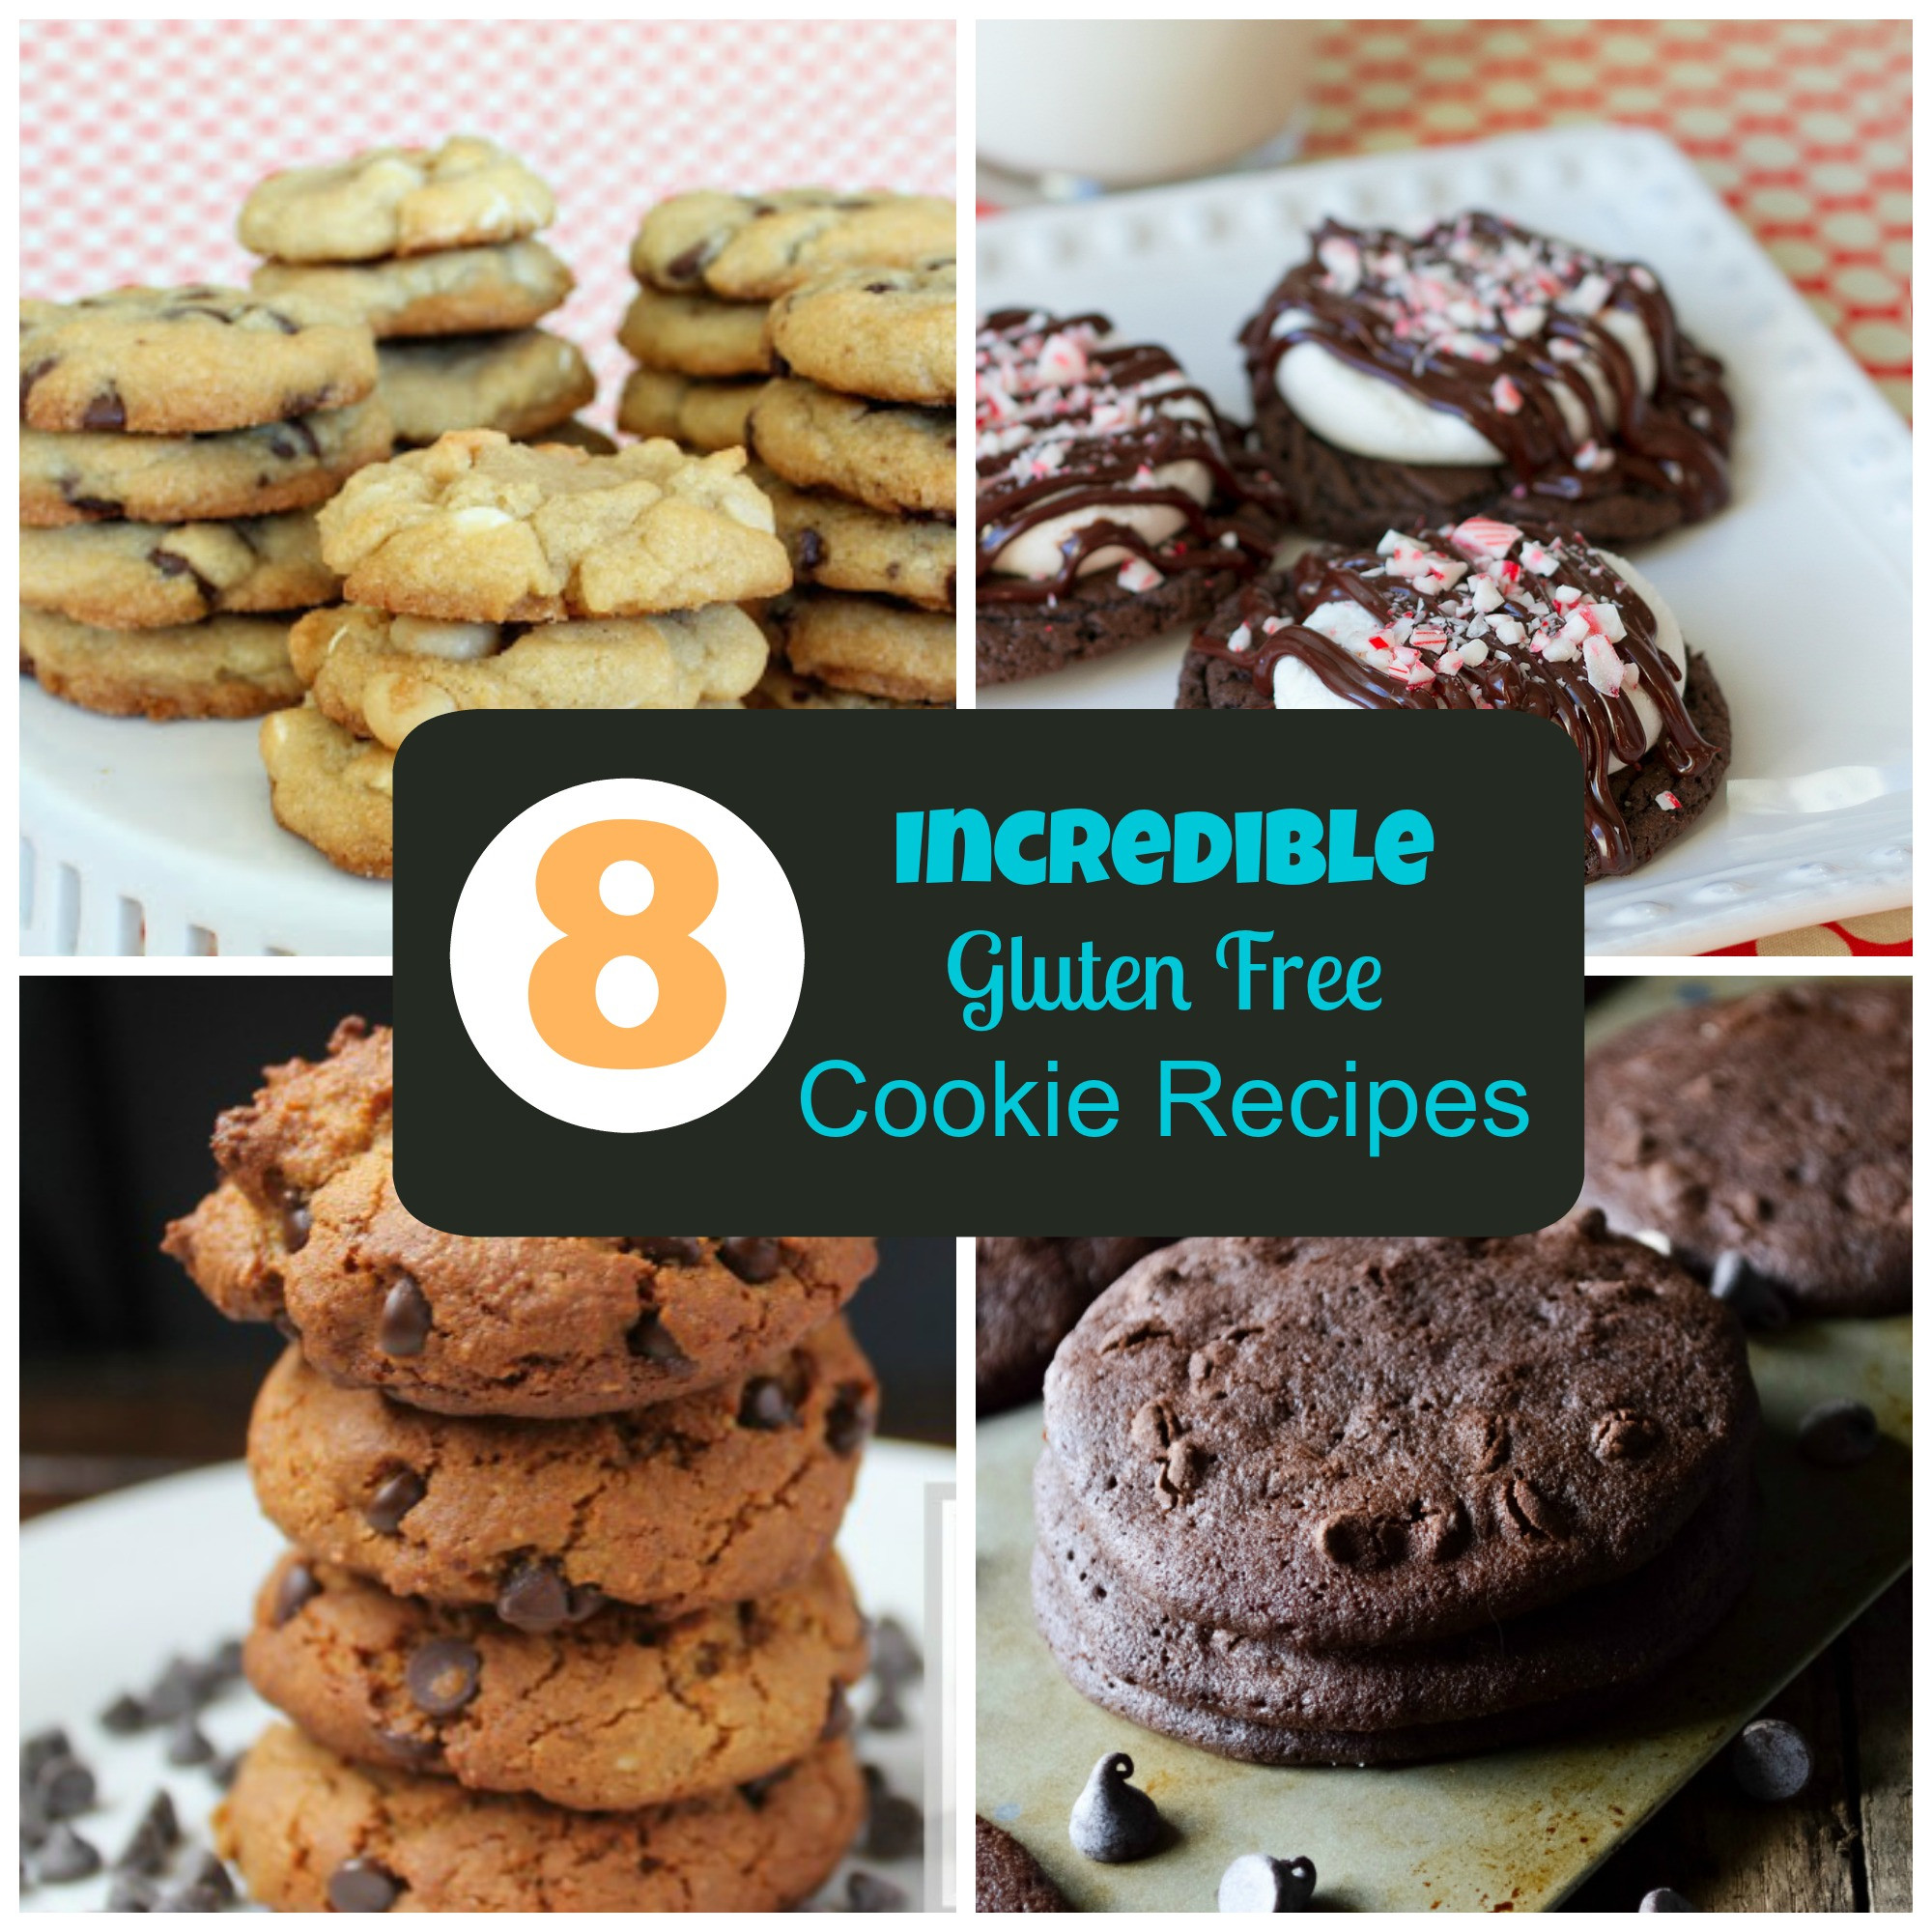 Dairy Free Cookie Recipes  Gluten Free Cookie Recipes